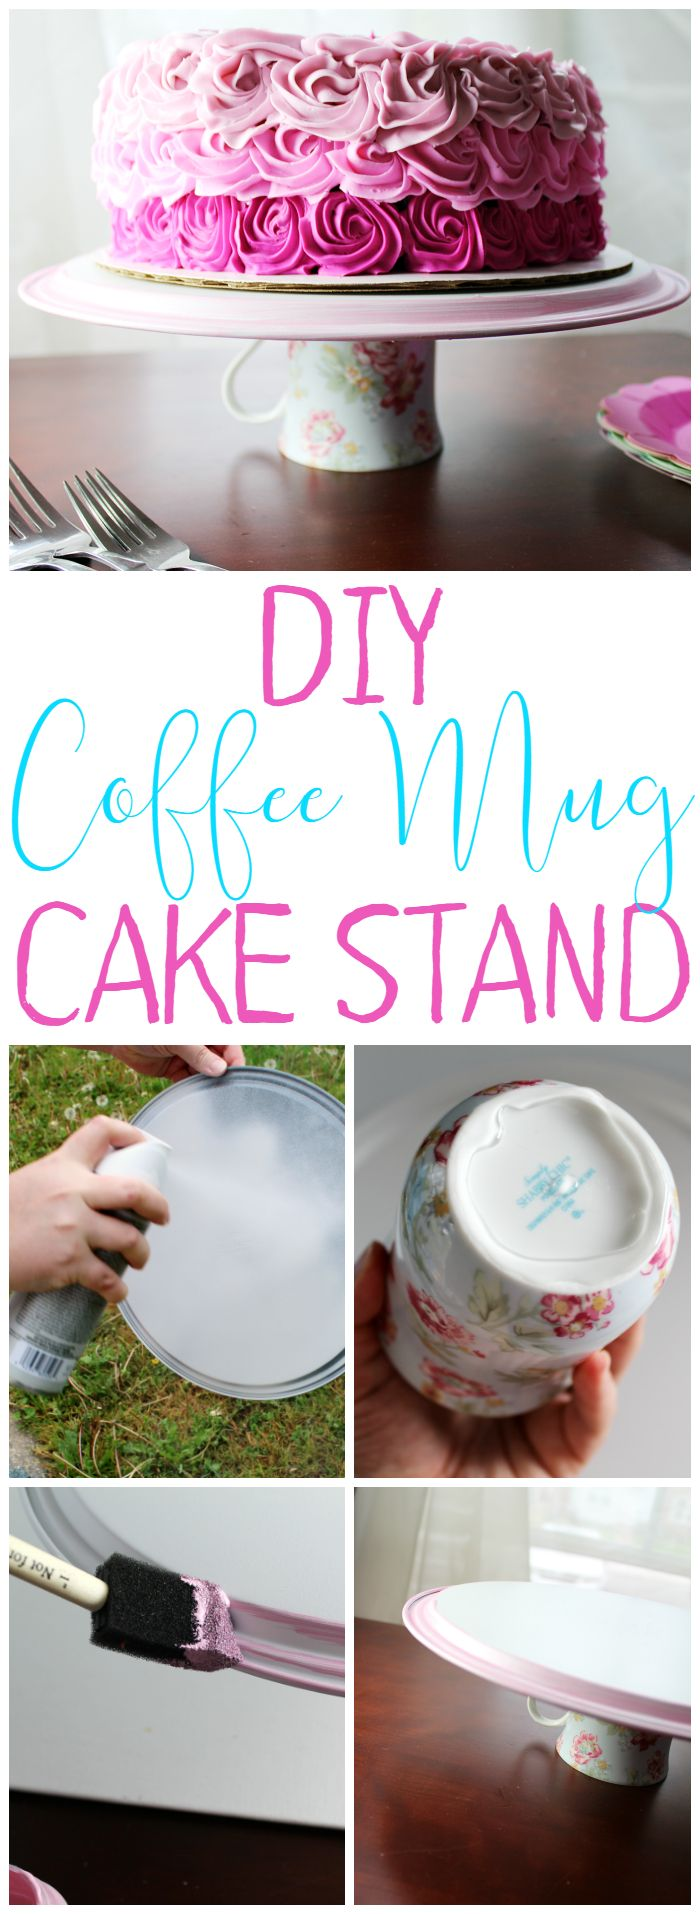 DIY Coffee Mug Cake Stand is easy to make and will make a great gift! [ad]